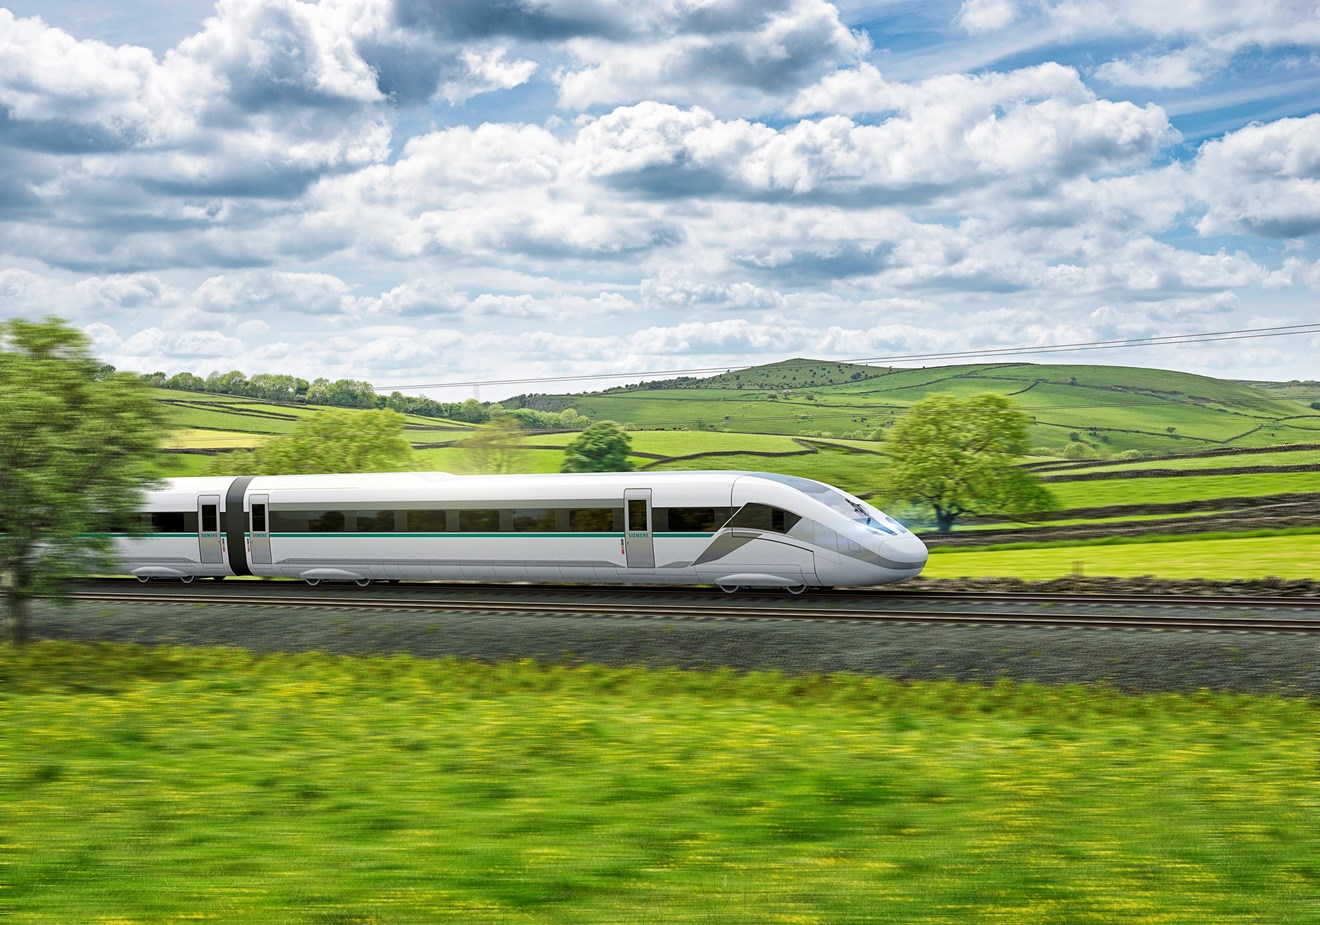 Siemens Mobility to showcase latest high-speed train at Railtex 2019: velaro-novo-uk-691282910-eci